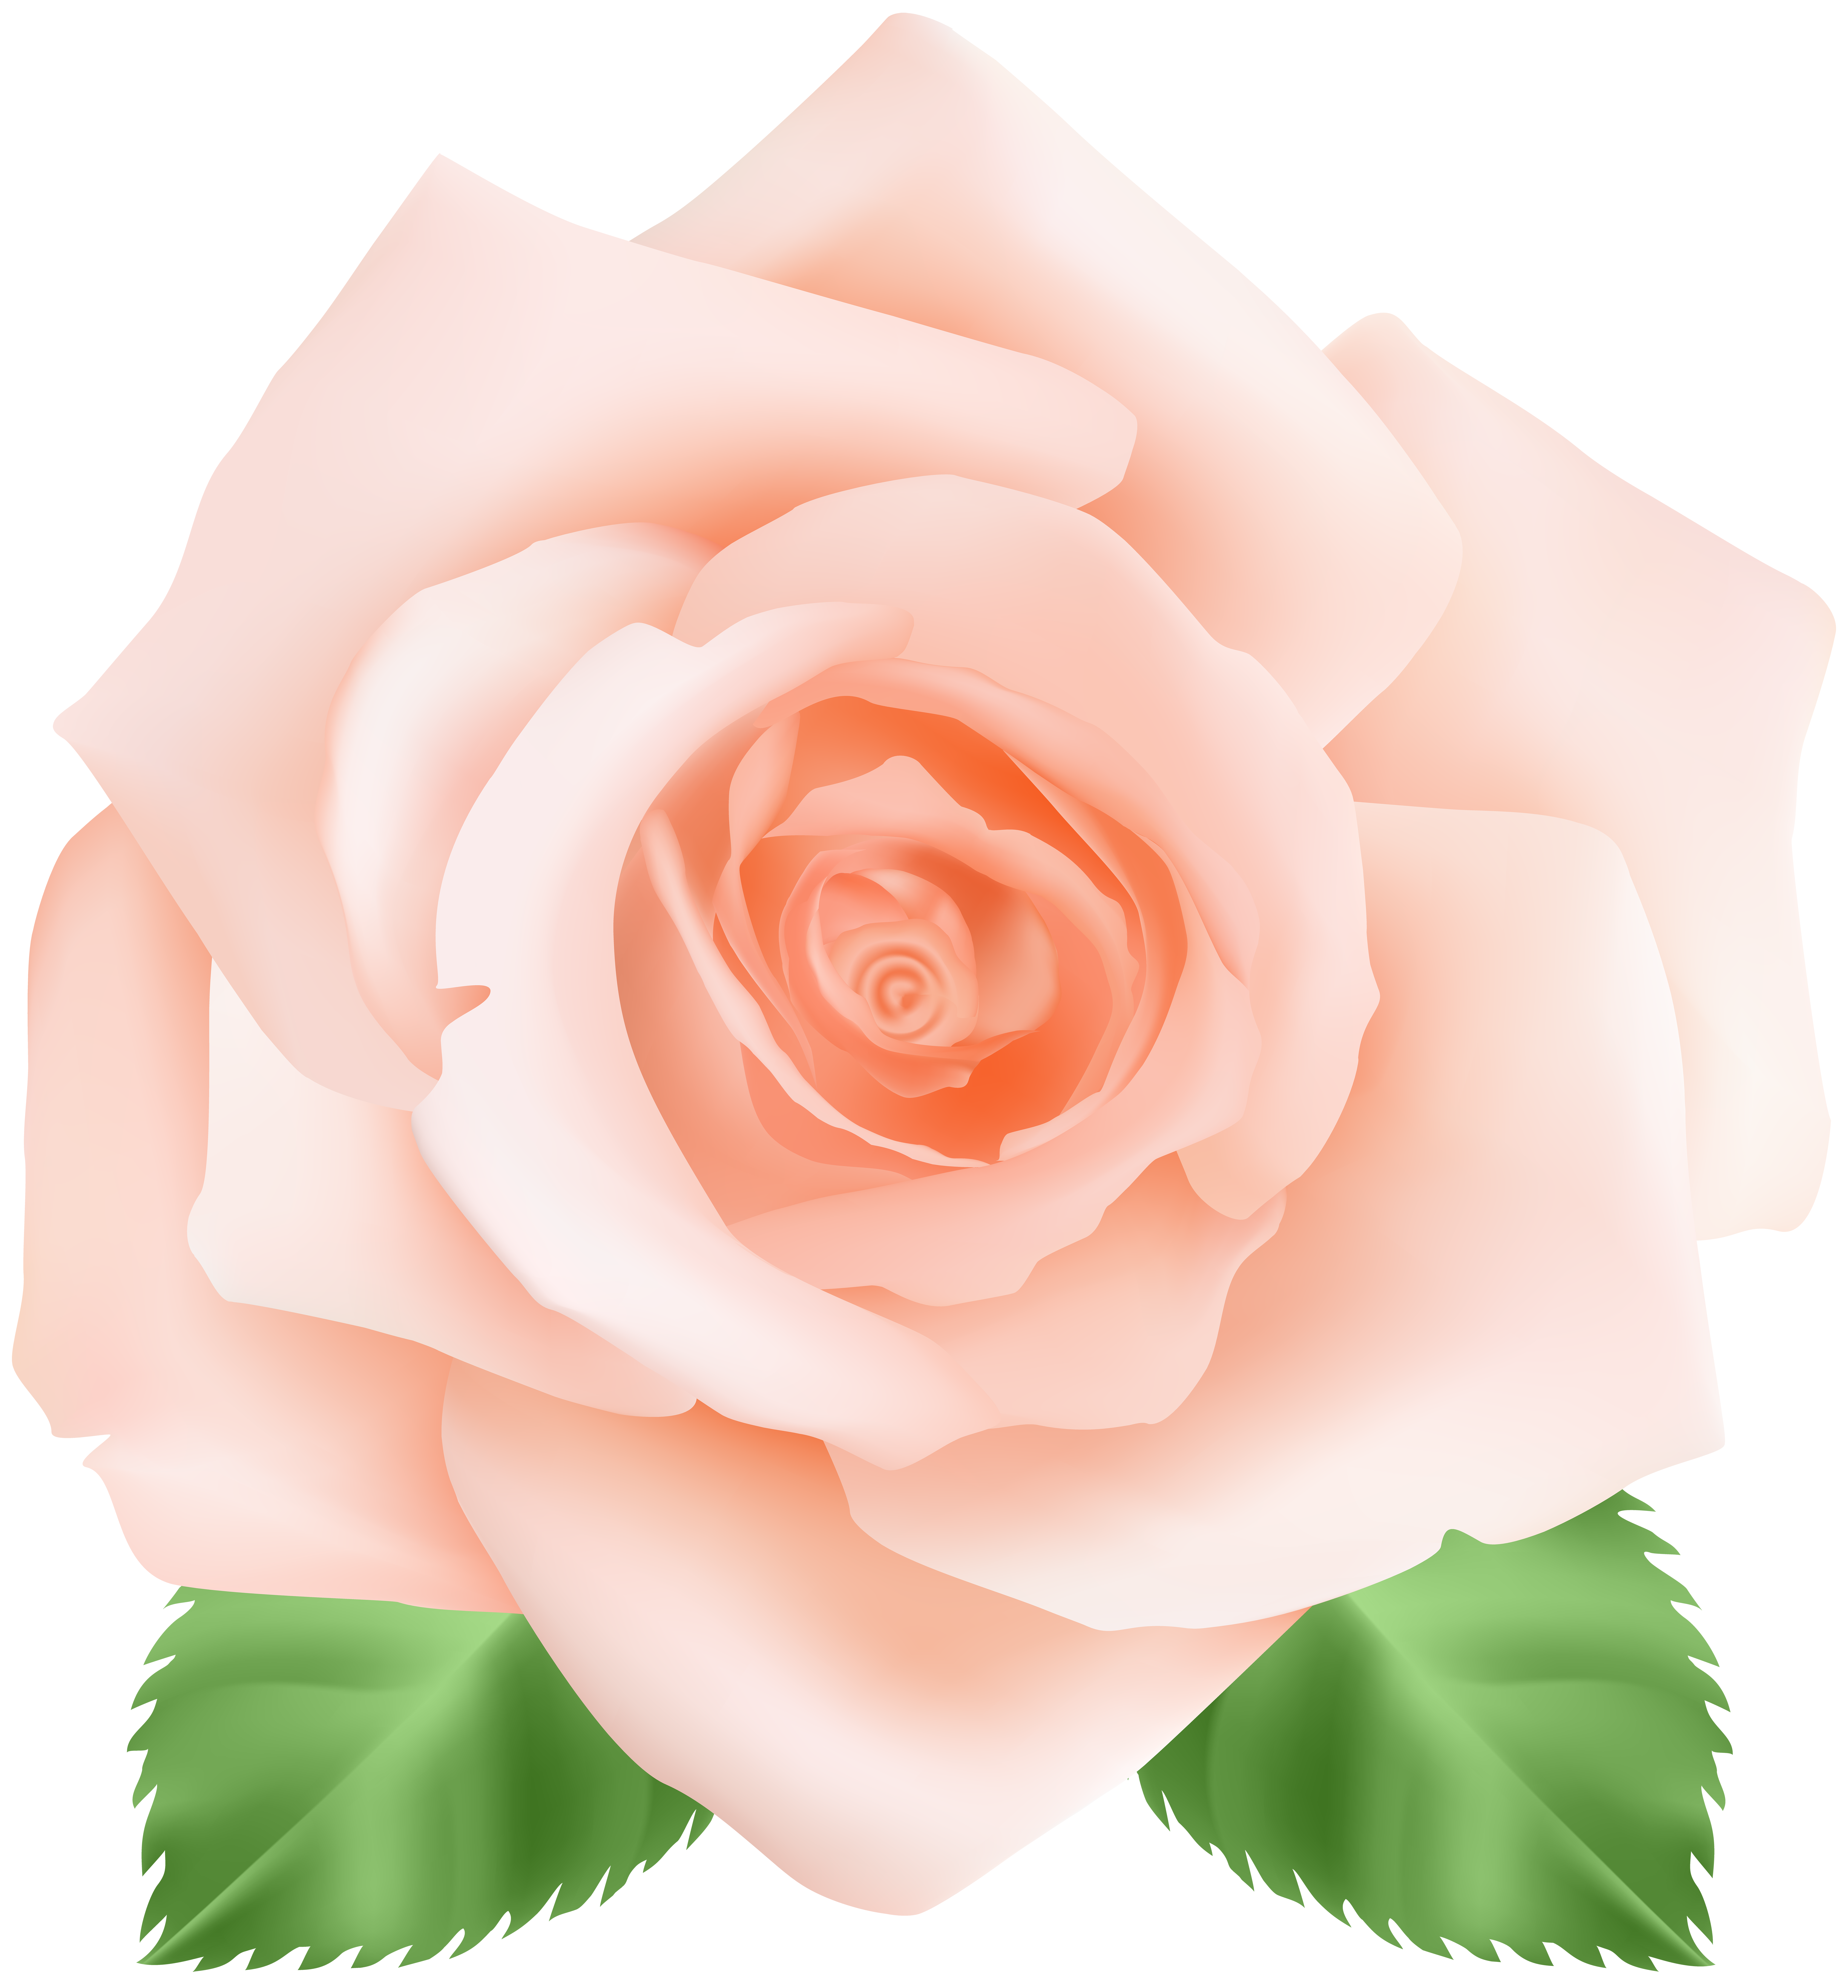 Peach rose clipart vector free download Peach Rose PNG Clip Art Image   Gallery Yopriceville - High ... vector free download